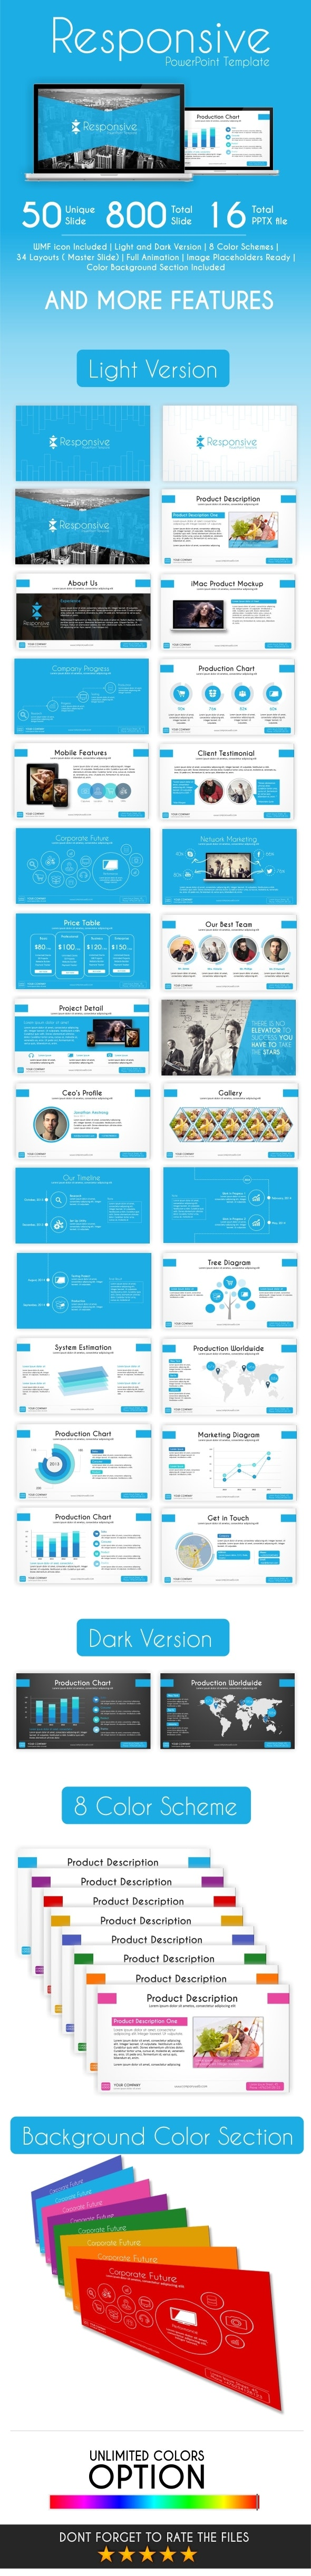 Responsive PowerPoint Template - Business PowerPoint Templates